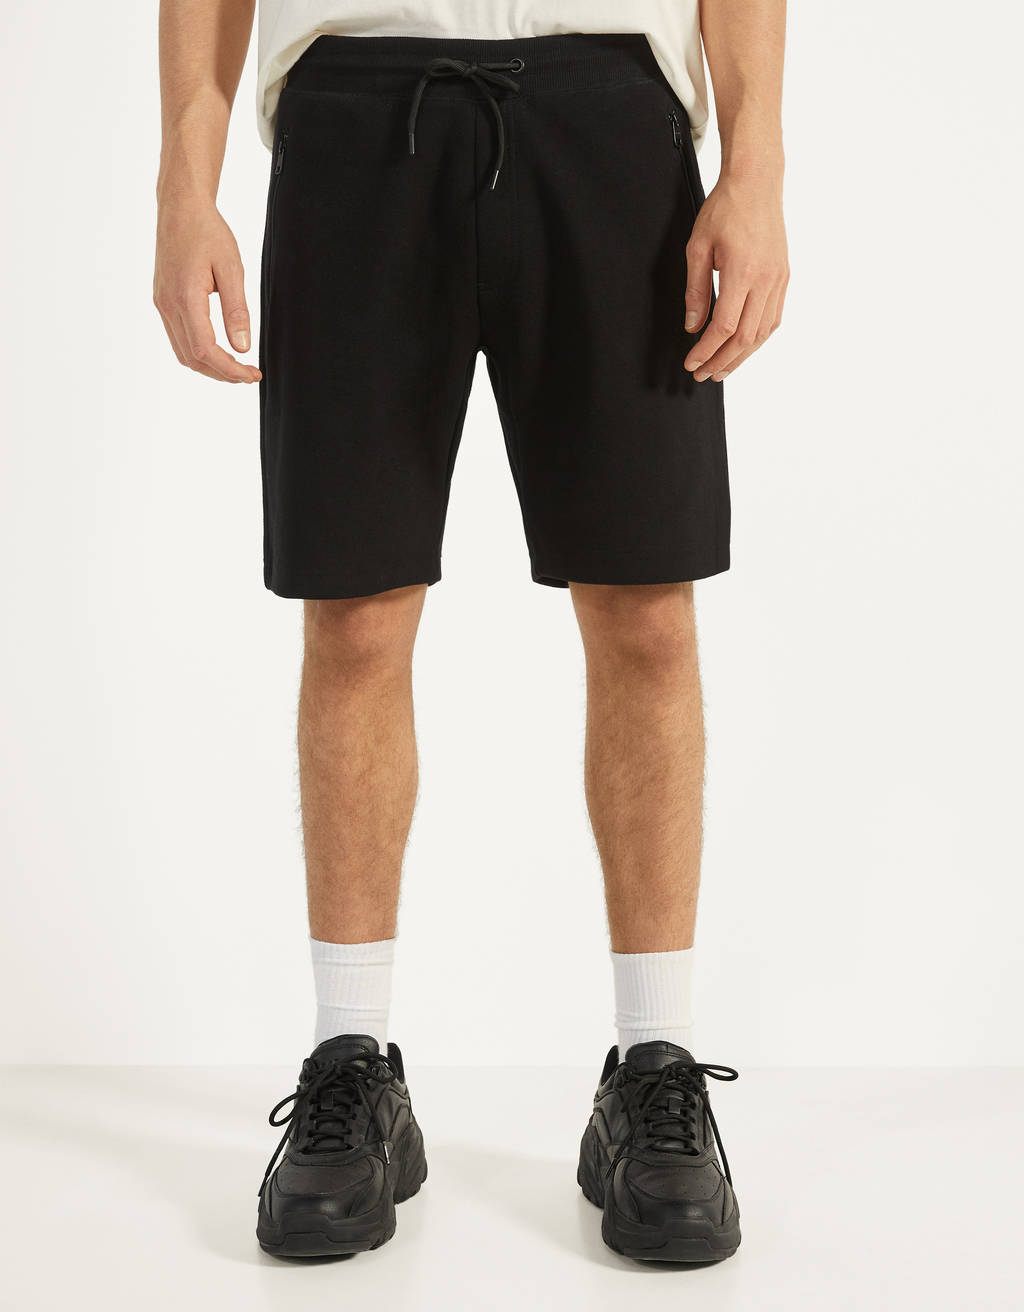 Bermuda shorts with zip pockets